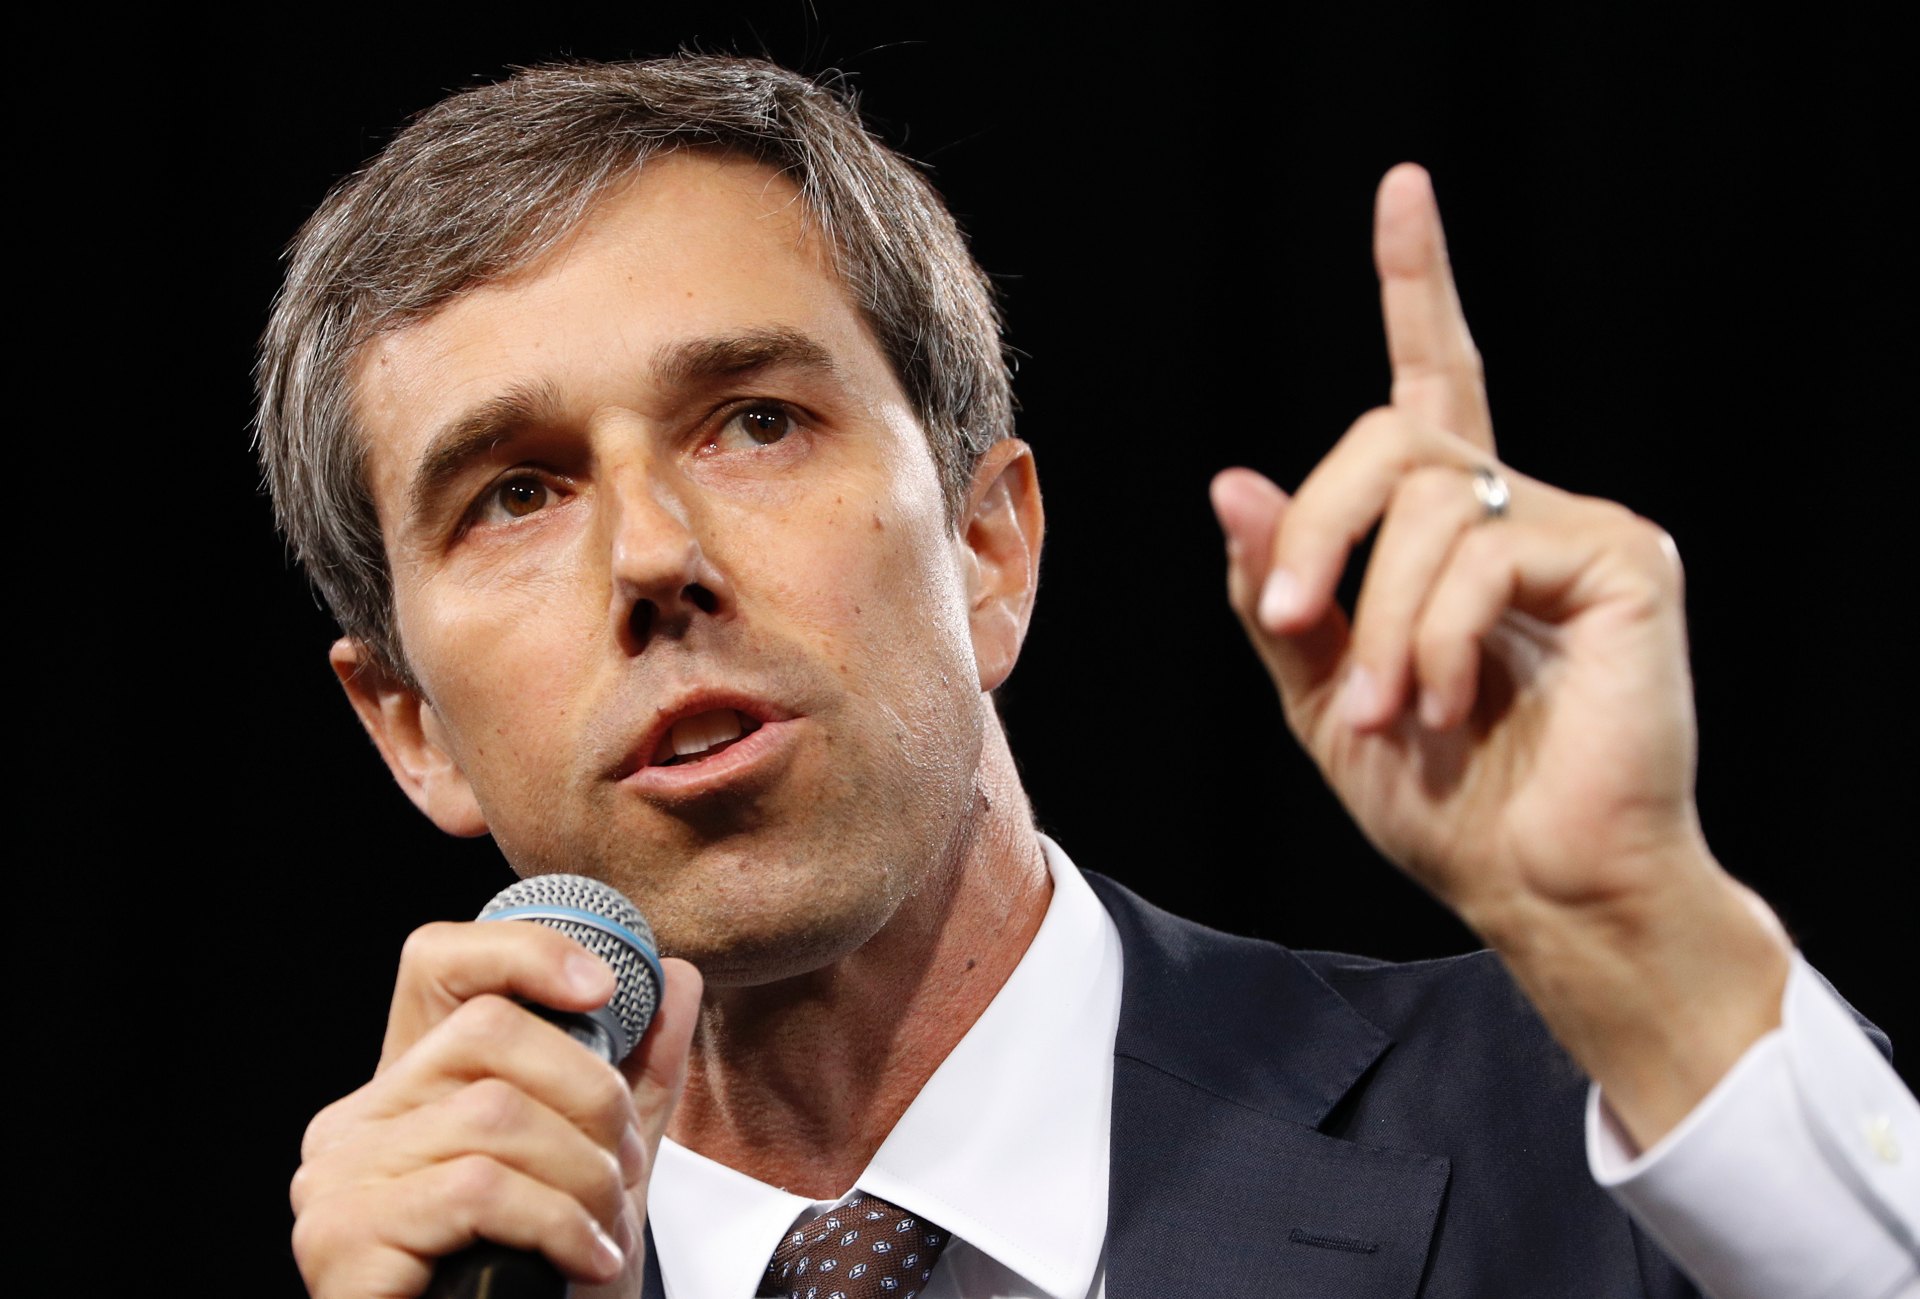 Westlake Legal Group ContentBroker_contentid-2cf8546e437546a78a13dea76b611ff2 Beto O'Rourke says Trump's rhetoric in part to blame for El Paso mass shooting fox-news/us/crime/mass-murder fox-news/us/crime fox-news/politics/2020-presidential-election fox-news/person/donald-trump fox-news/person/beto-orourke fox news fnc/politics fnc article Andrew O'Reilly a0a9a7ba-84dd-55dc-92cd-3a00cb6b933c